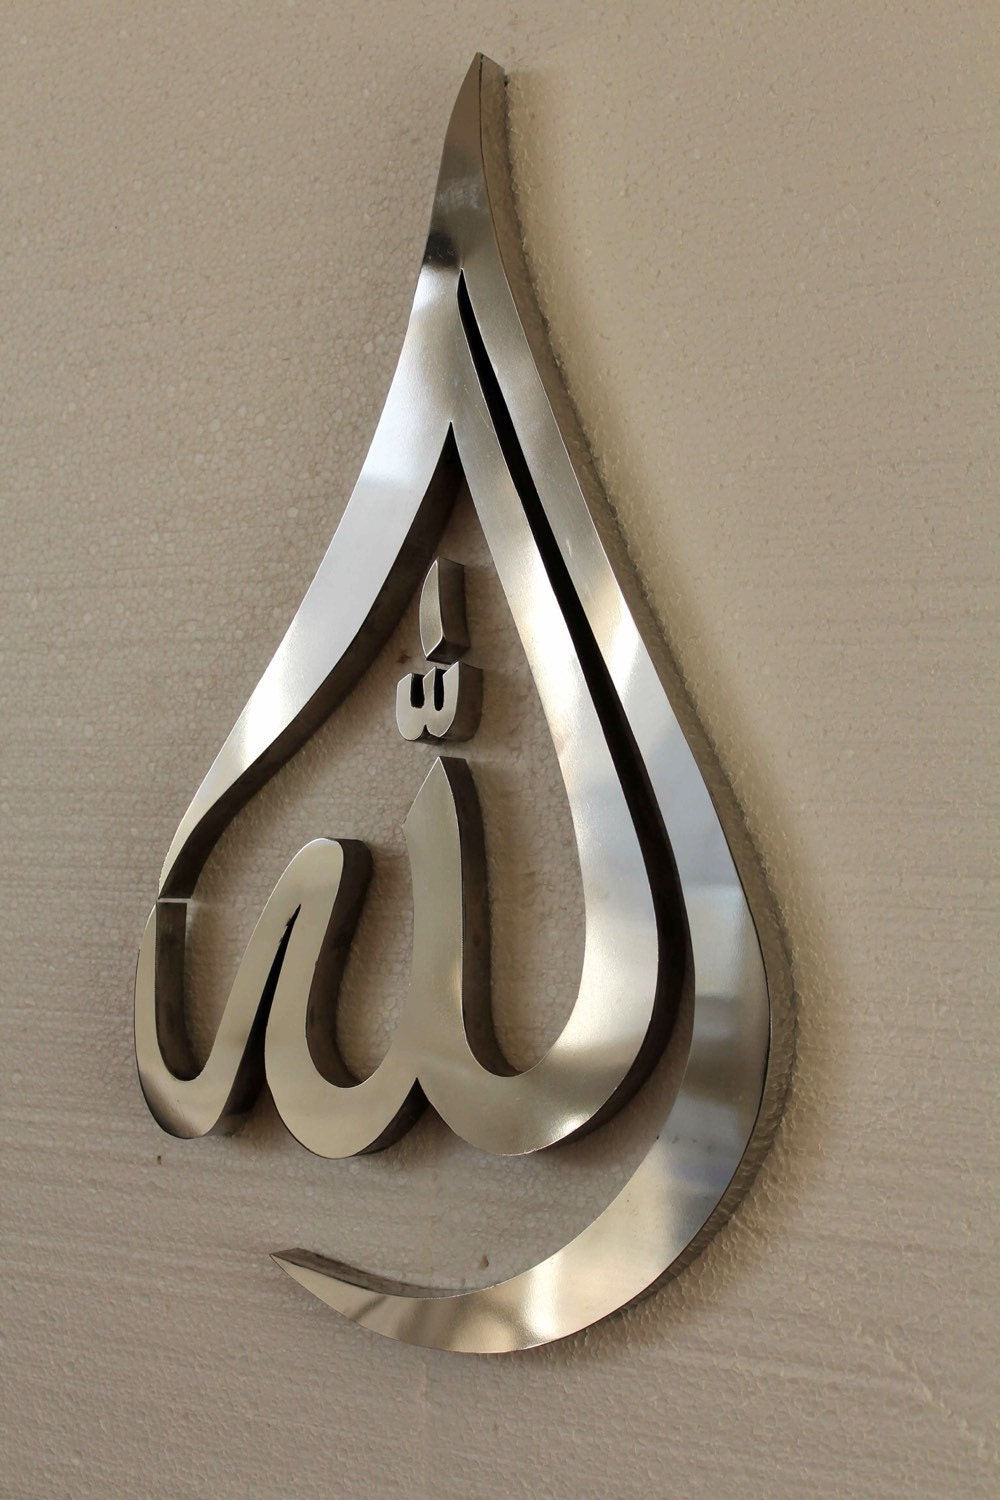 Stainless Steel Allah Tear Drop By Modernwallart1 On Etsy